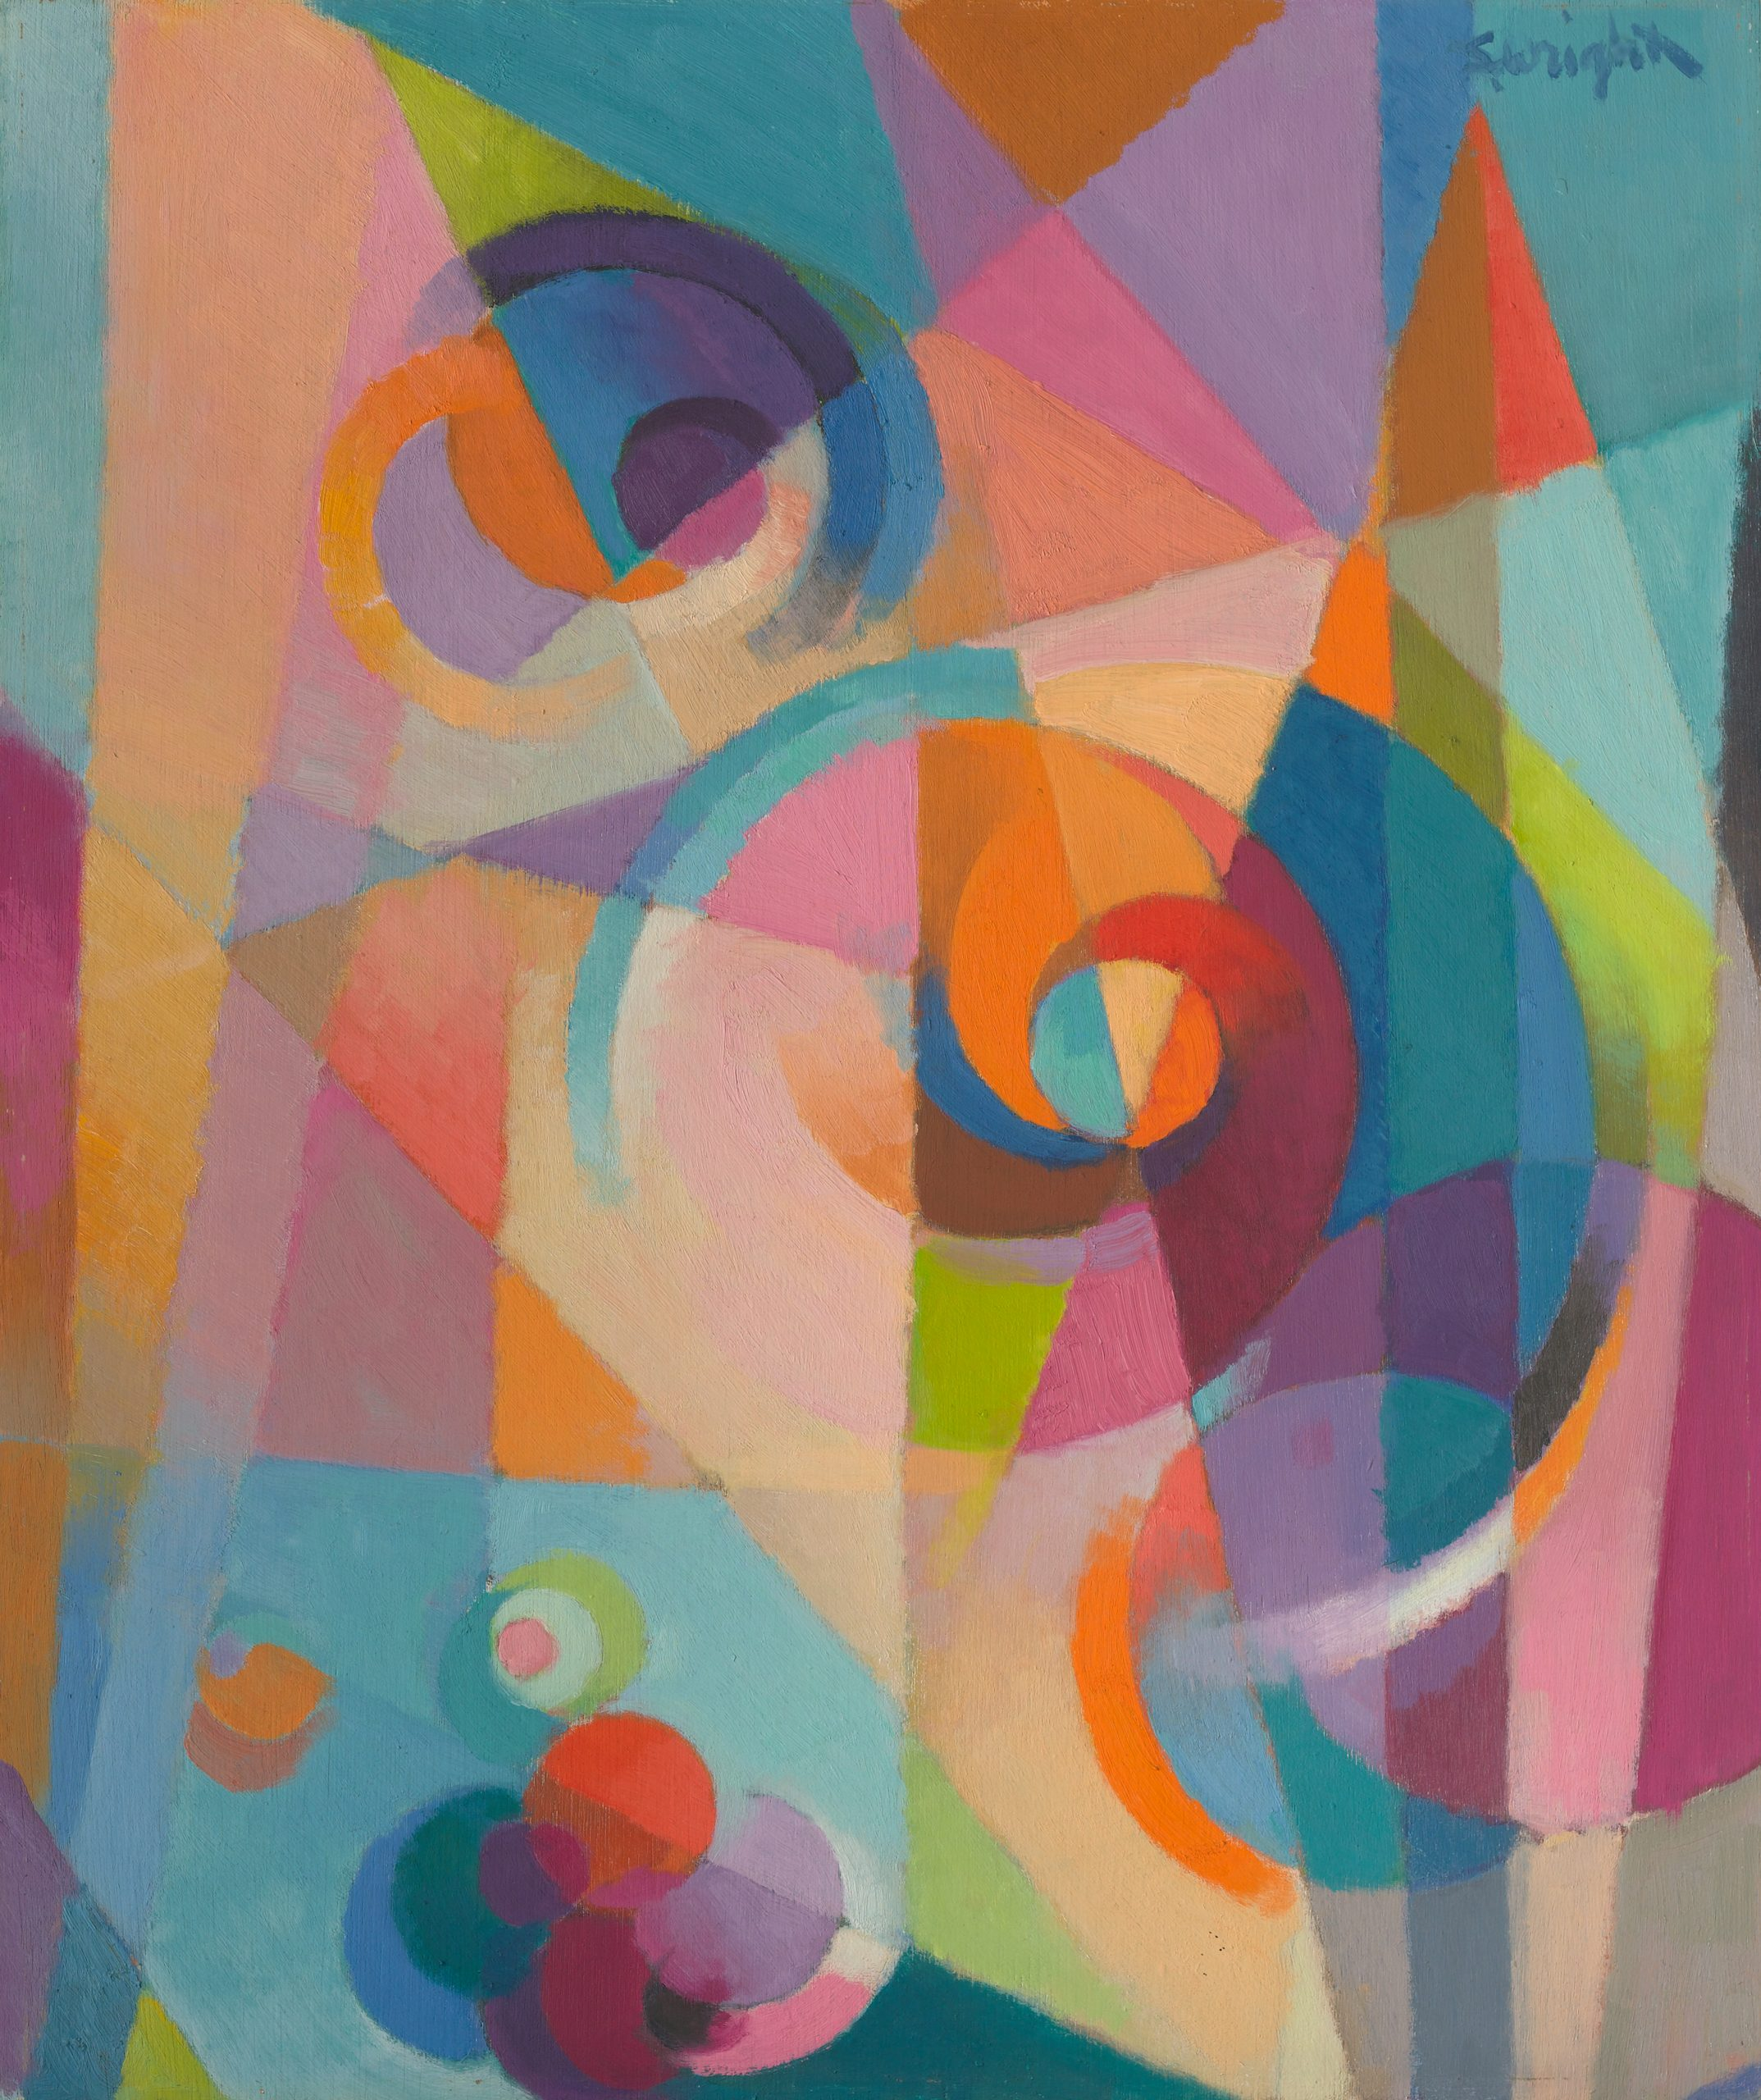 Painting of abstract geometric divisions of bright pastel colors inlayed with three spirals.